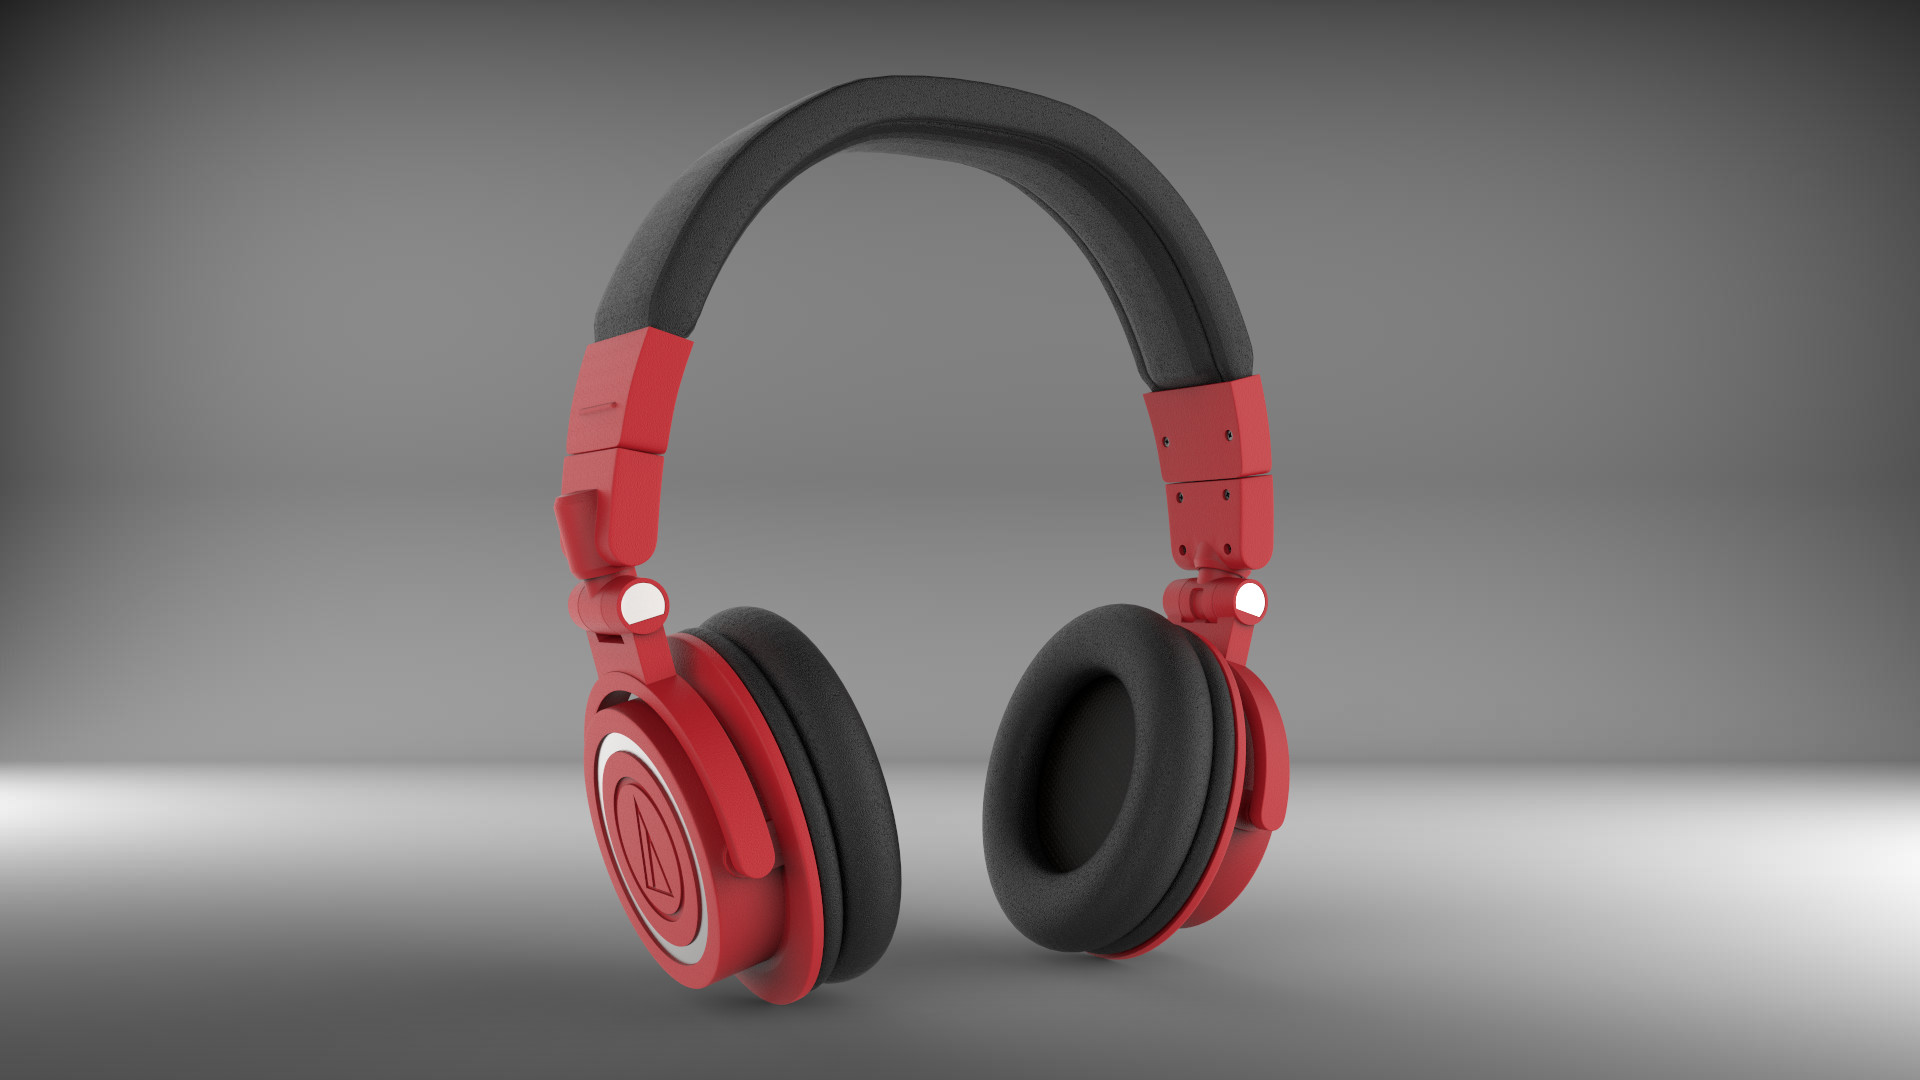 Derek kruk headphone